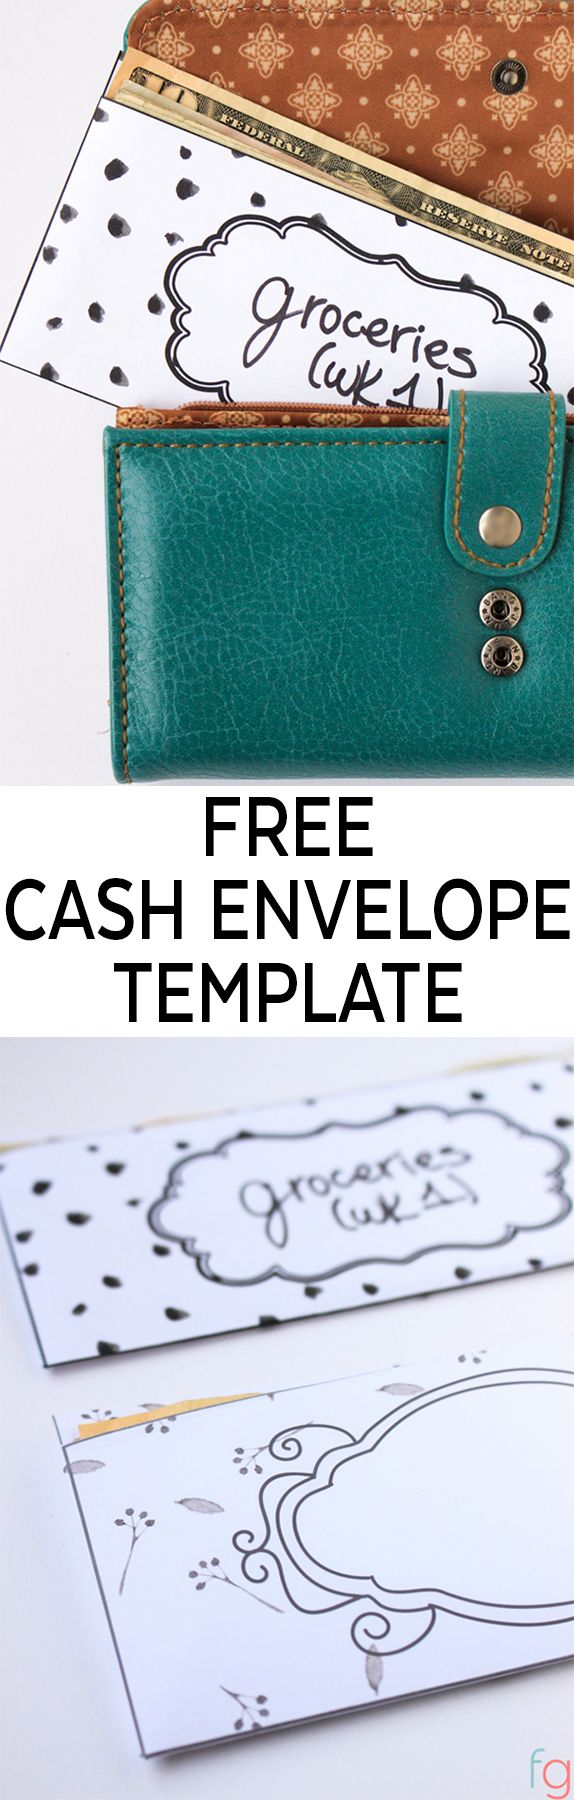 Free Budget Printables:  Free cash envelope template that will fit in your wallet! No special tools required - just download the free template, and cut and fold to make your envelopes for your cash envelope system!